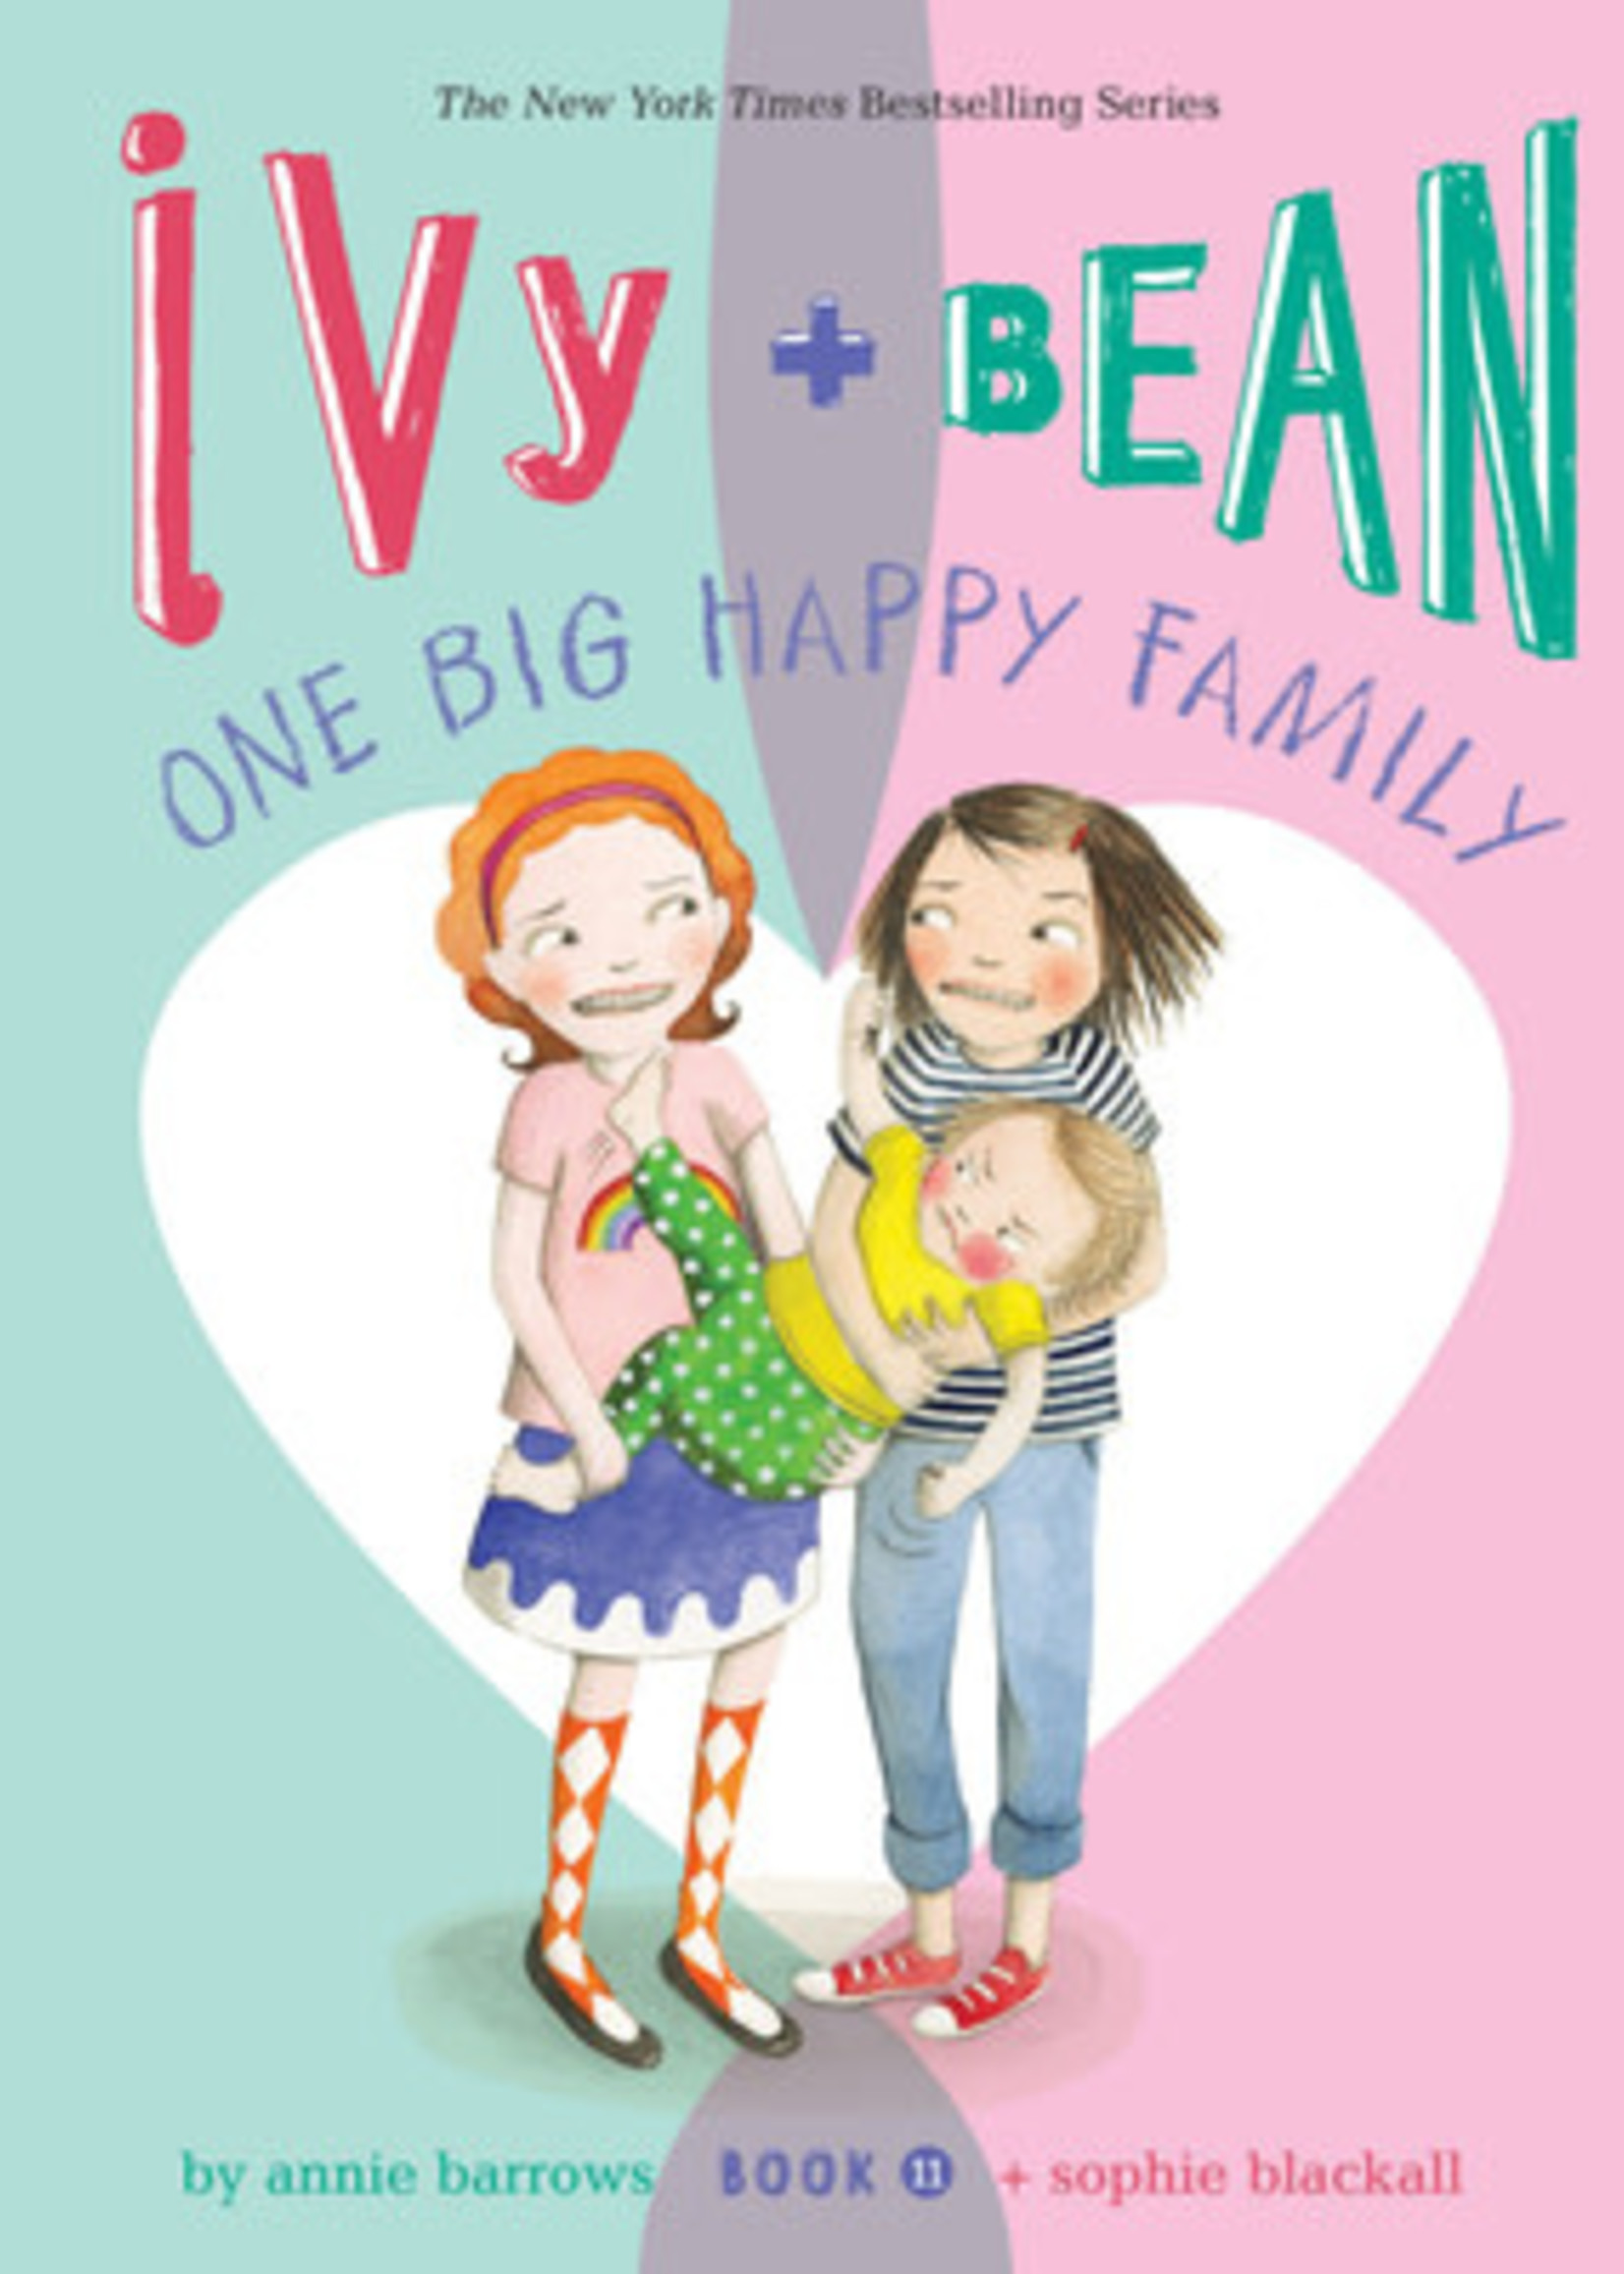 Ivy and Bean One Big Happy Family (Ivy & Bean #11) by Annie Barrows,  Sophie Blackall